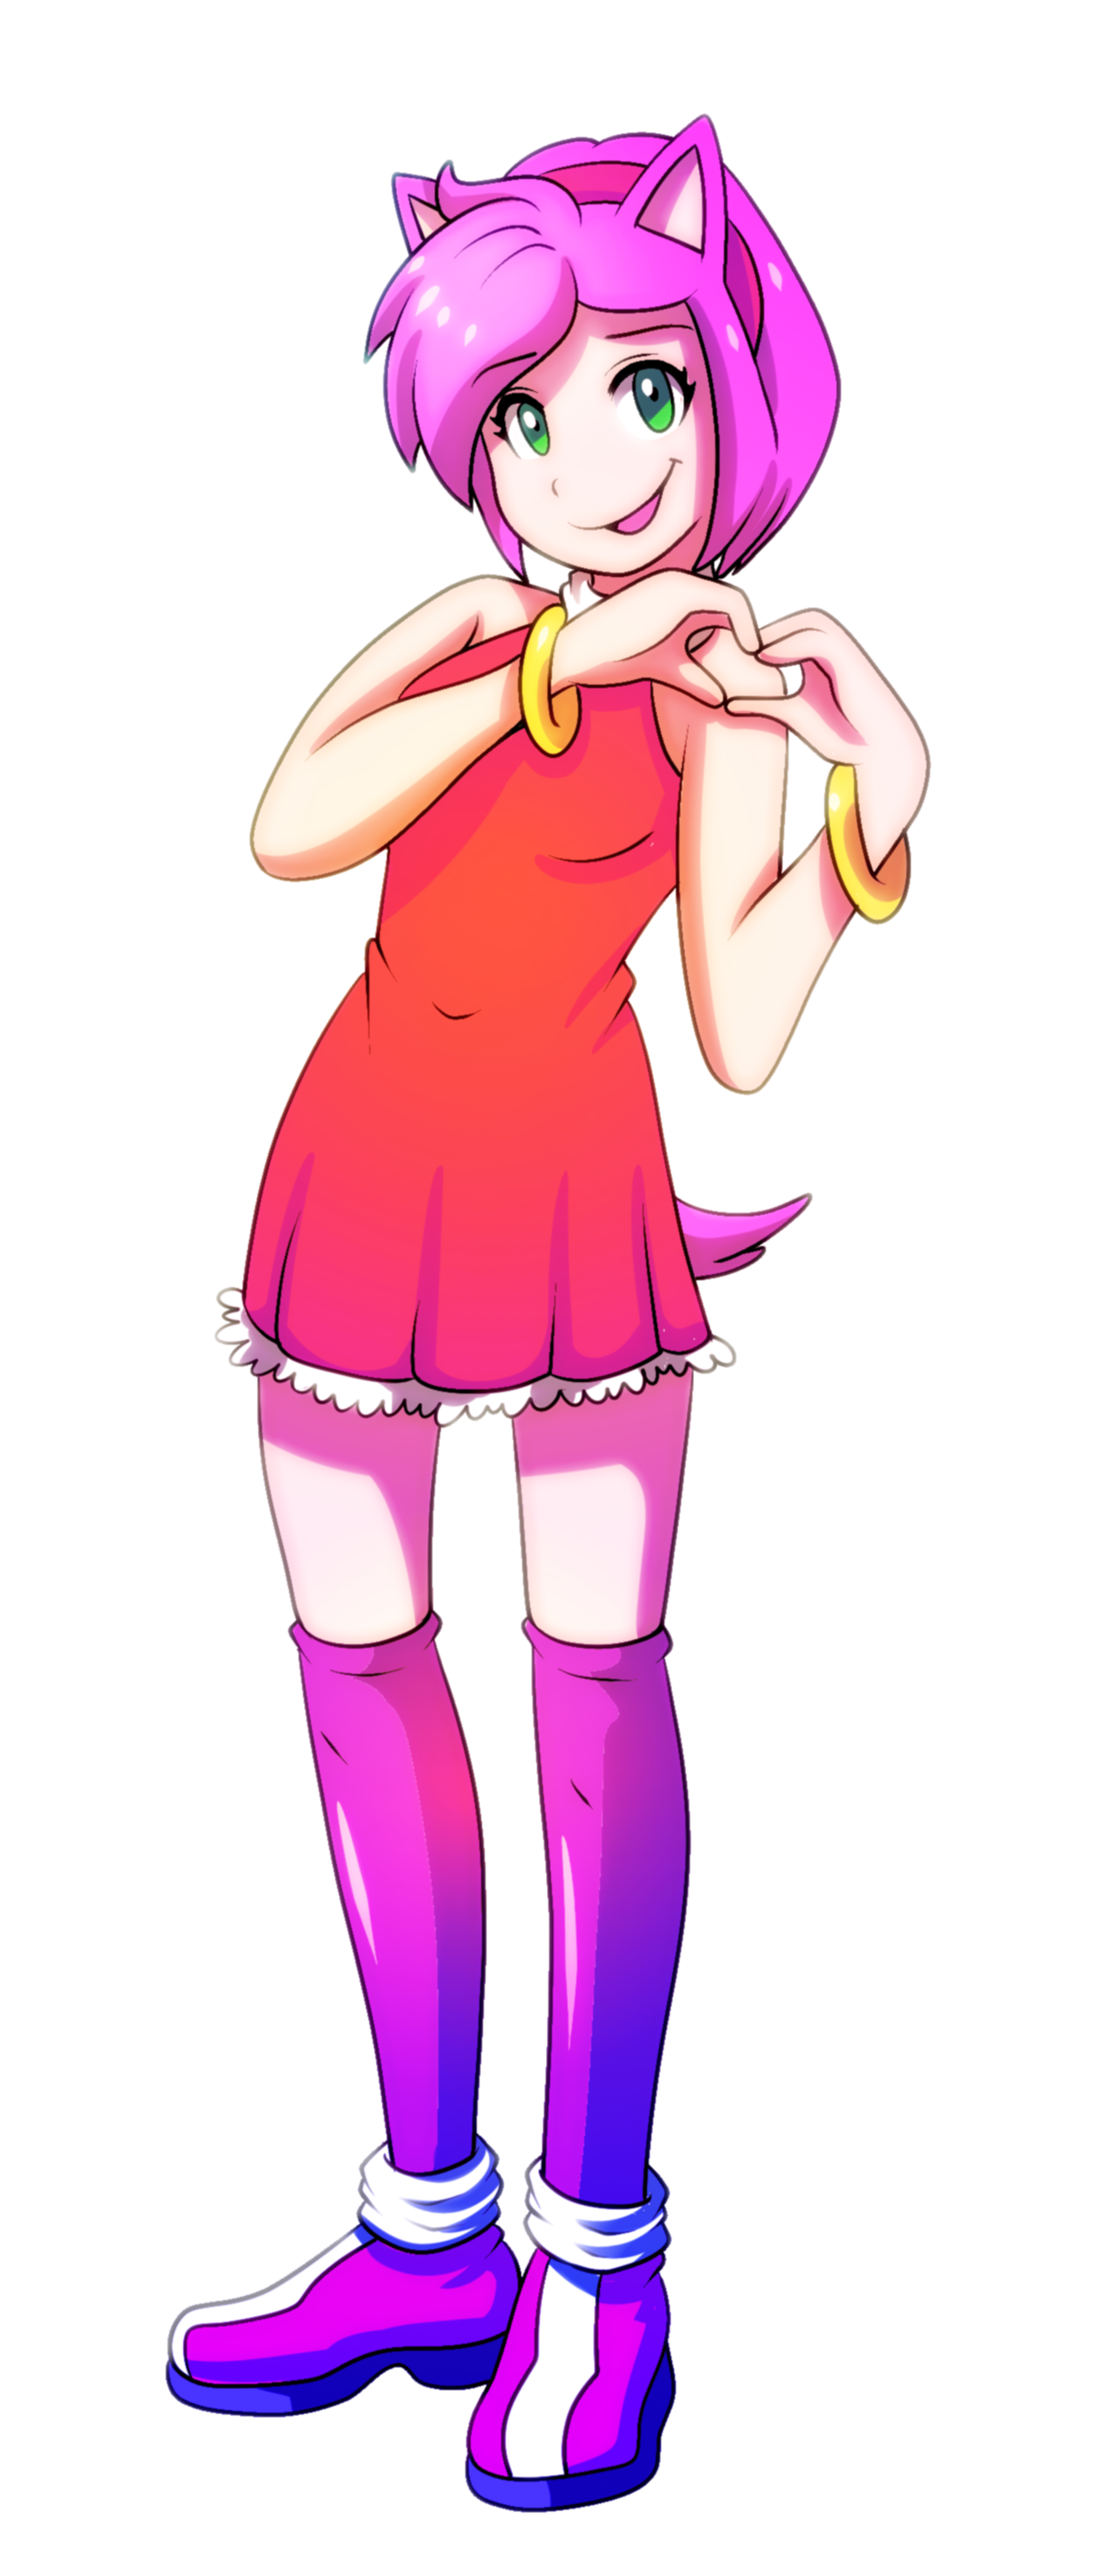 Amy Rose The Hedgehog Gijinka Weasyl